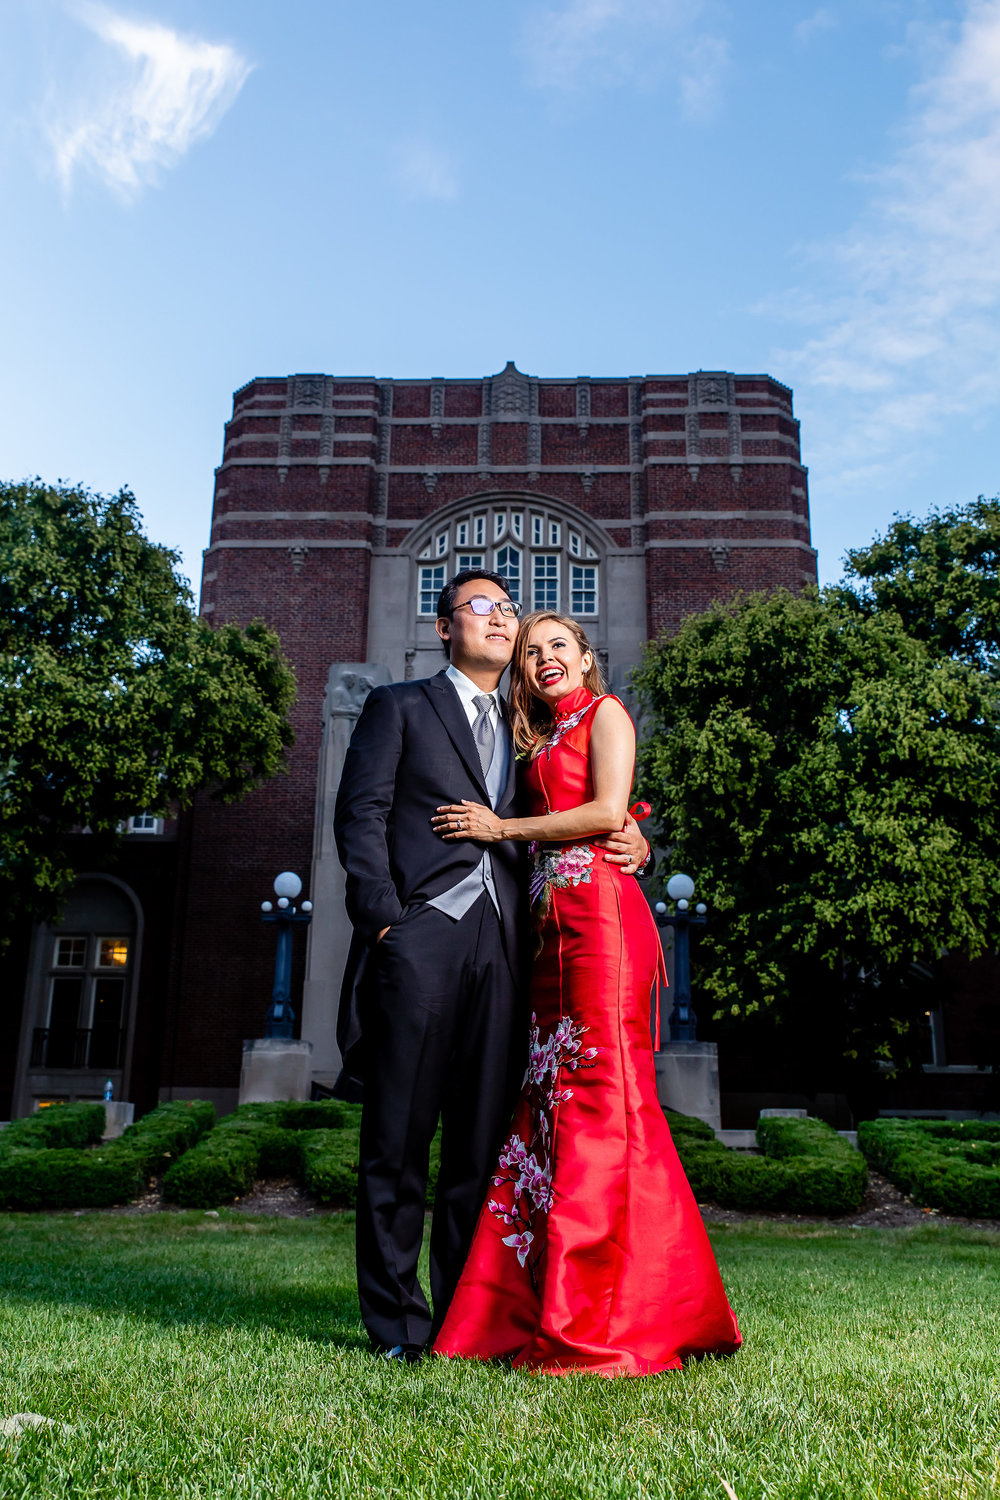 purdue memorial union wedding photographer photography lafayette indiana st. thomas aquinas